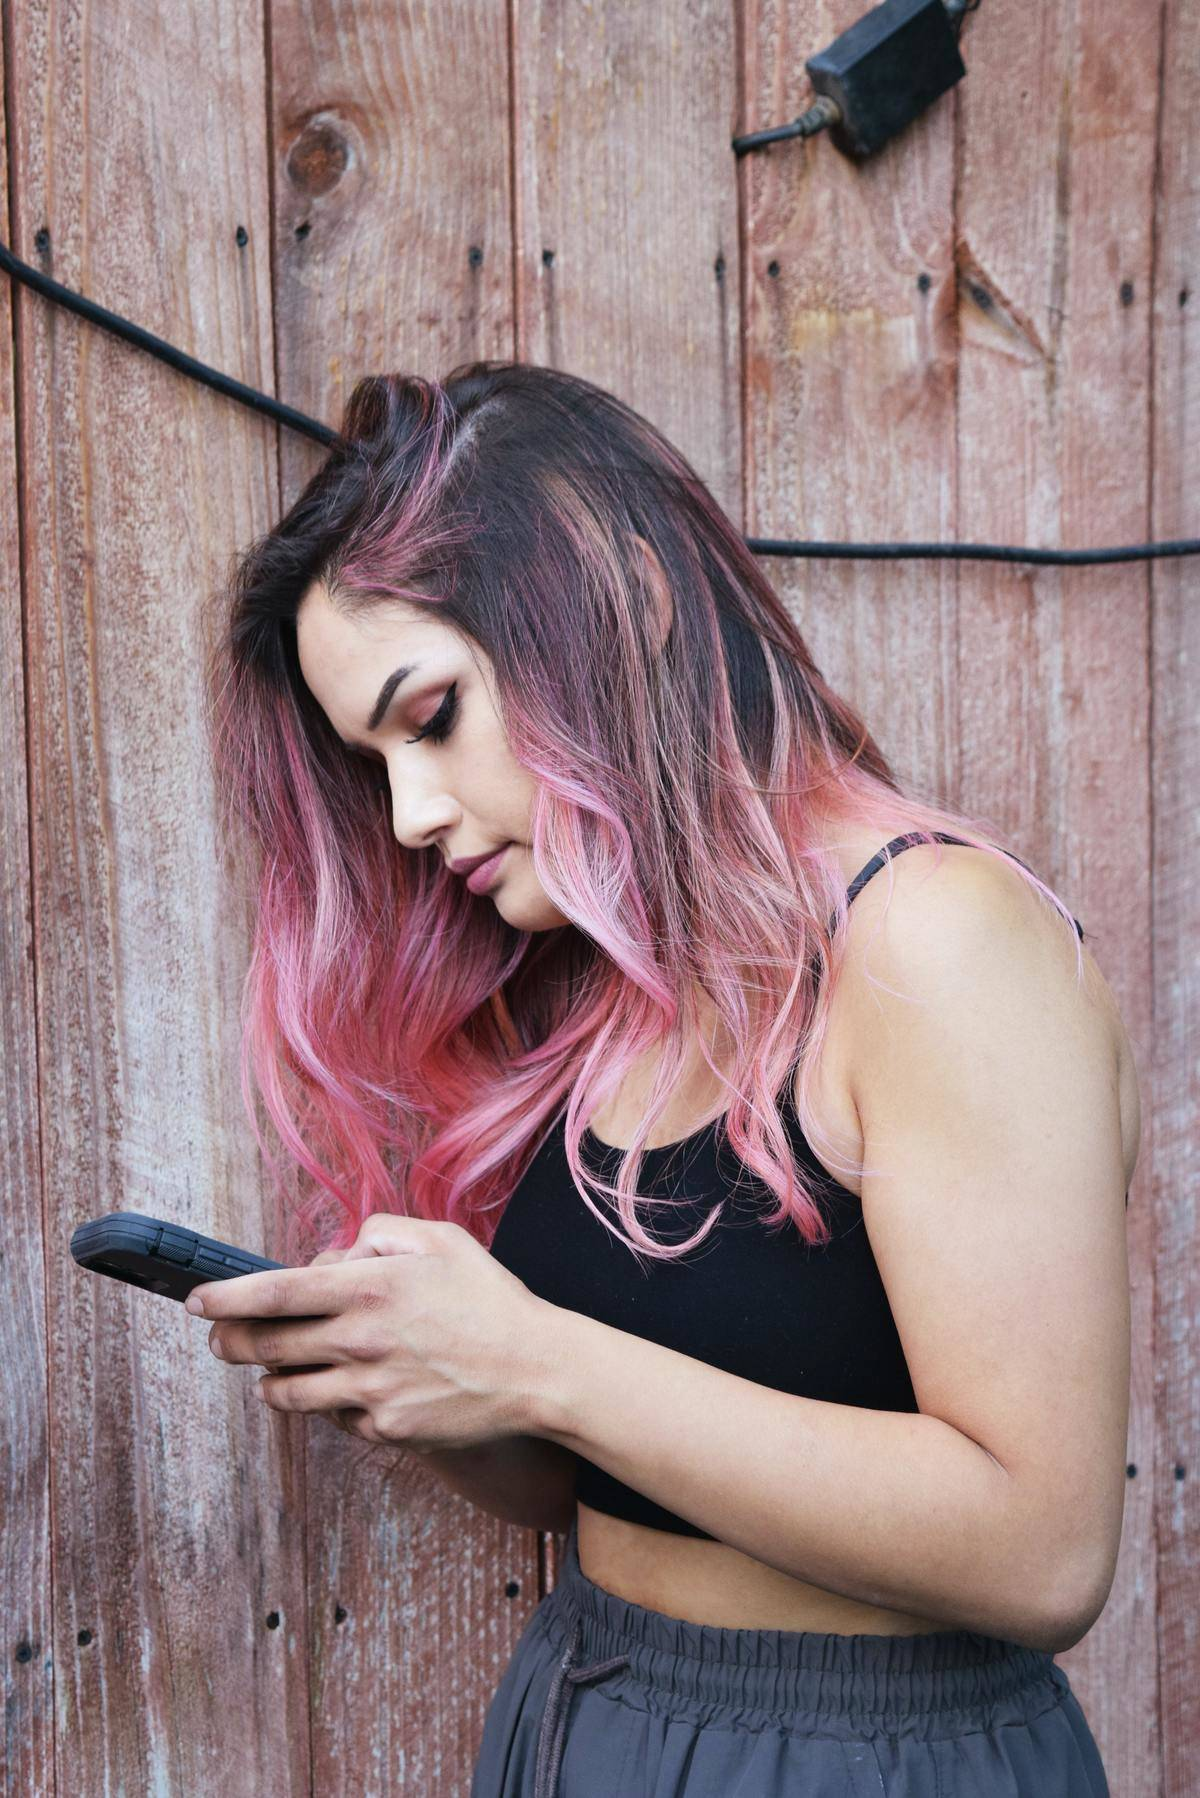 Woman with pink hair looks down at phone